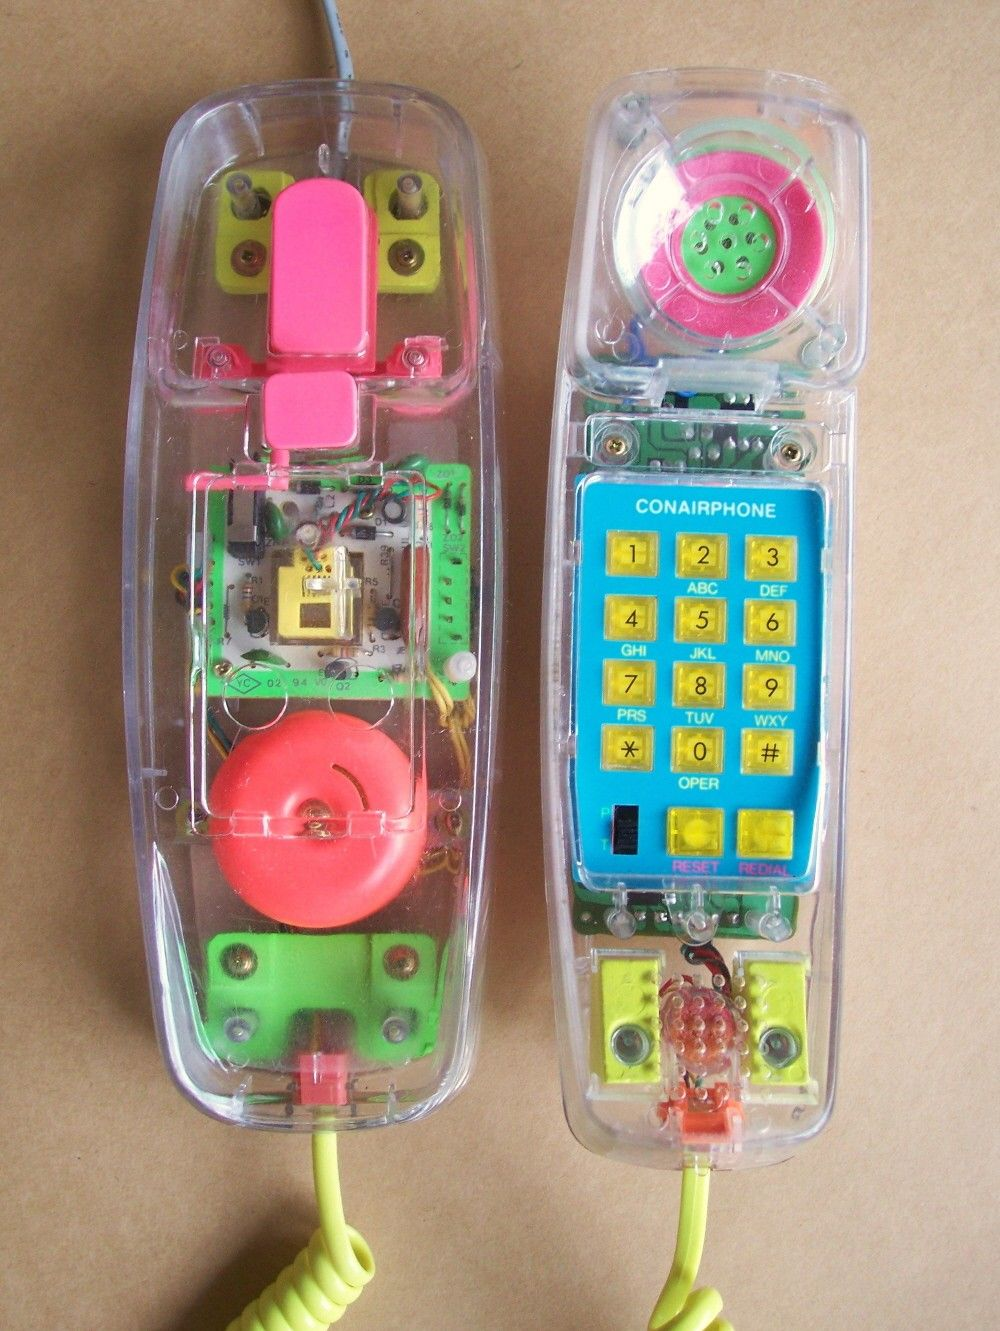 90's FTW. Did anybody else have one of these?